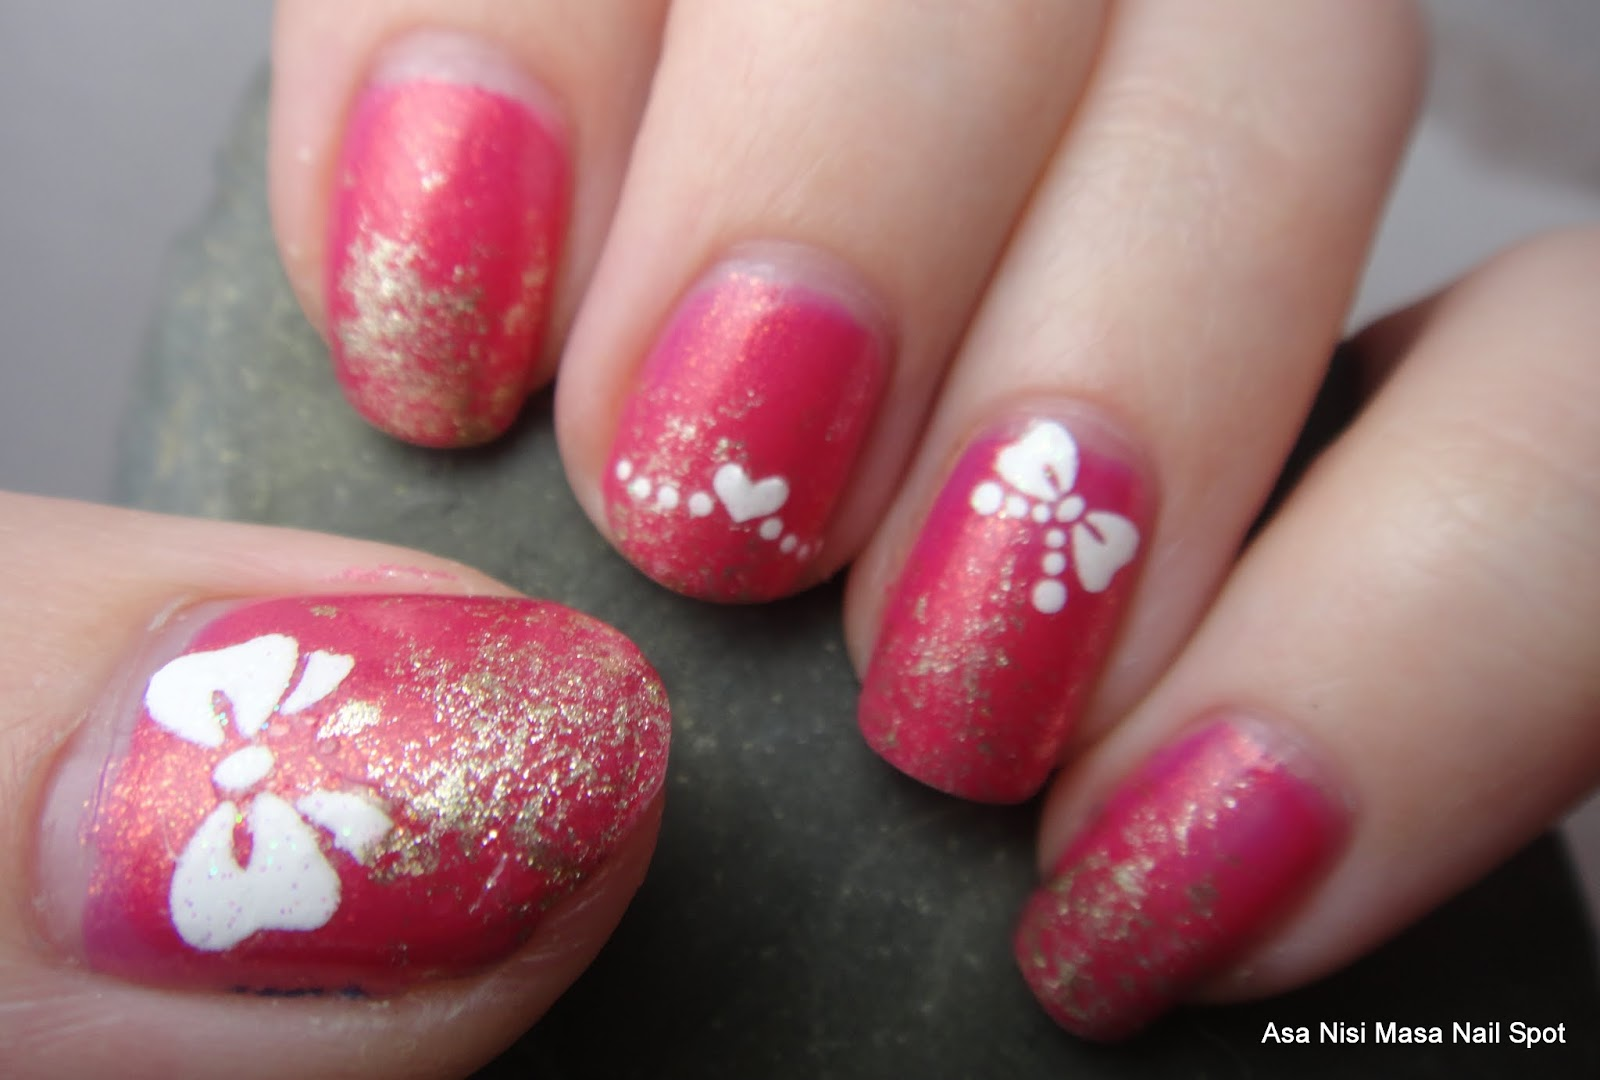 asa nisi masa nail spot pink and glittery with bows the